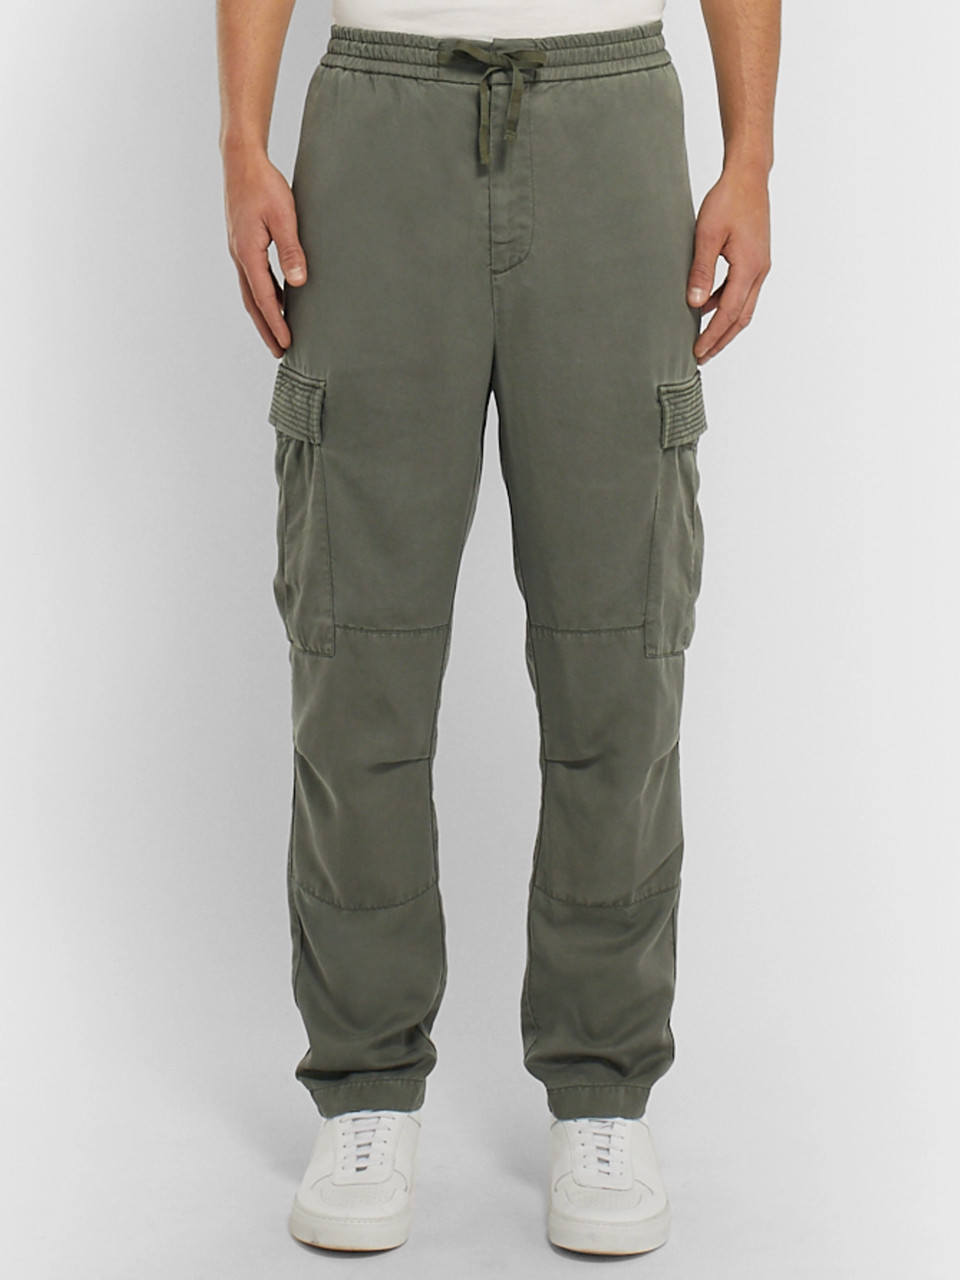 Officine Generale Tapered Garment-Dyed Lyocell Cargo Trousers